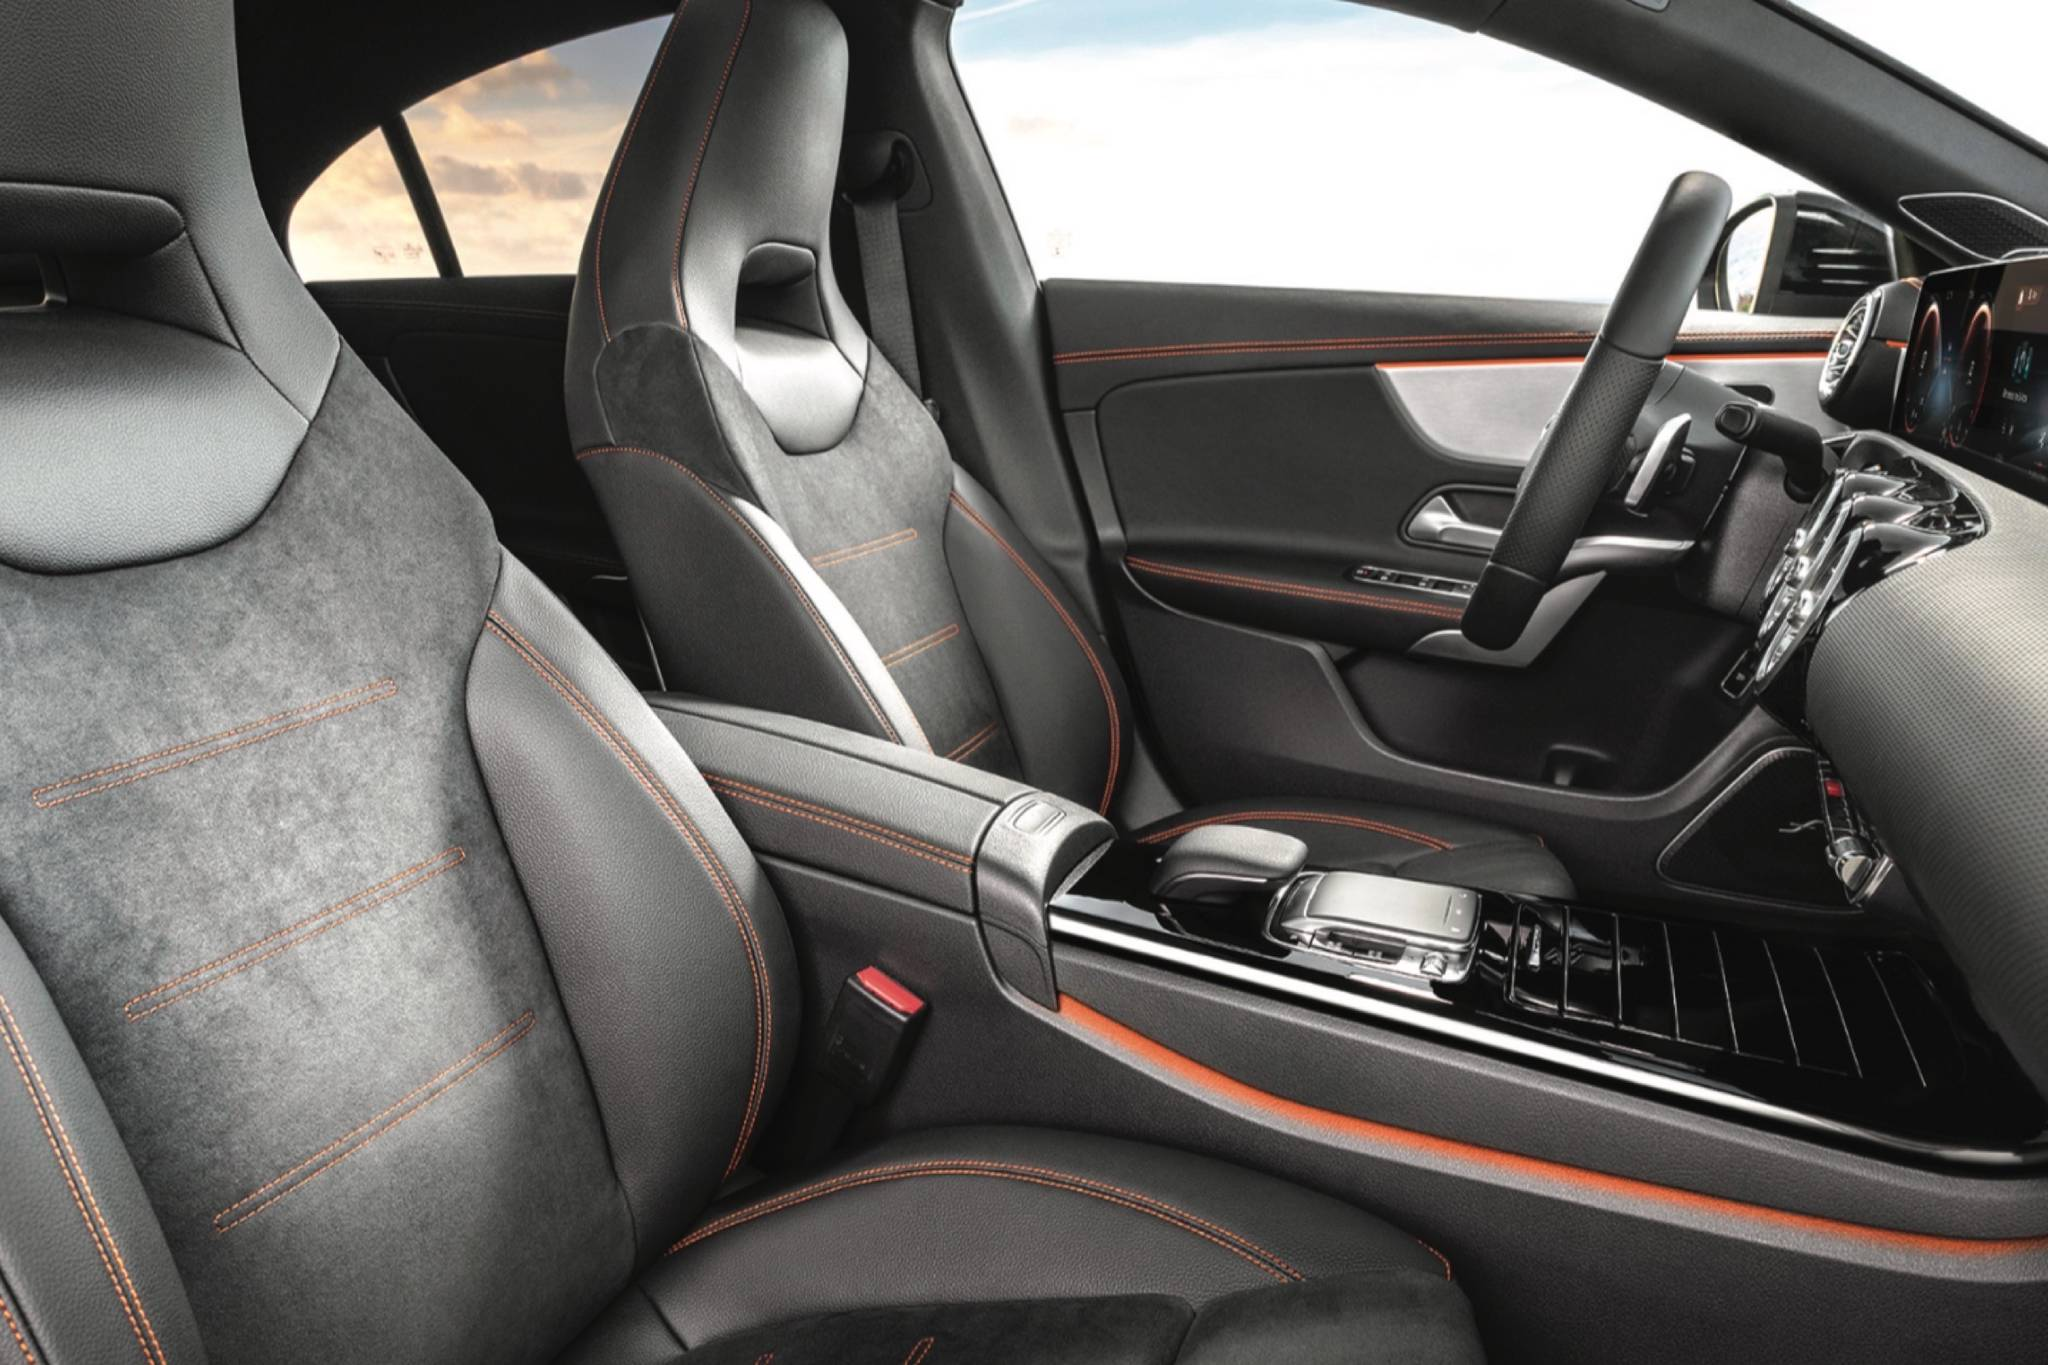 If there was any doubt that the previous CLA's interior was too basic, look at the upgrade for the 2020 model. Aside from a premium look and feel, the optional MBUX user interface adds top-of-the line infotainment to a more entry-level vehicle. Photo: Mercedes-Benz